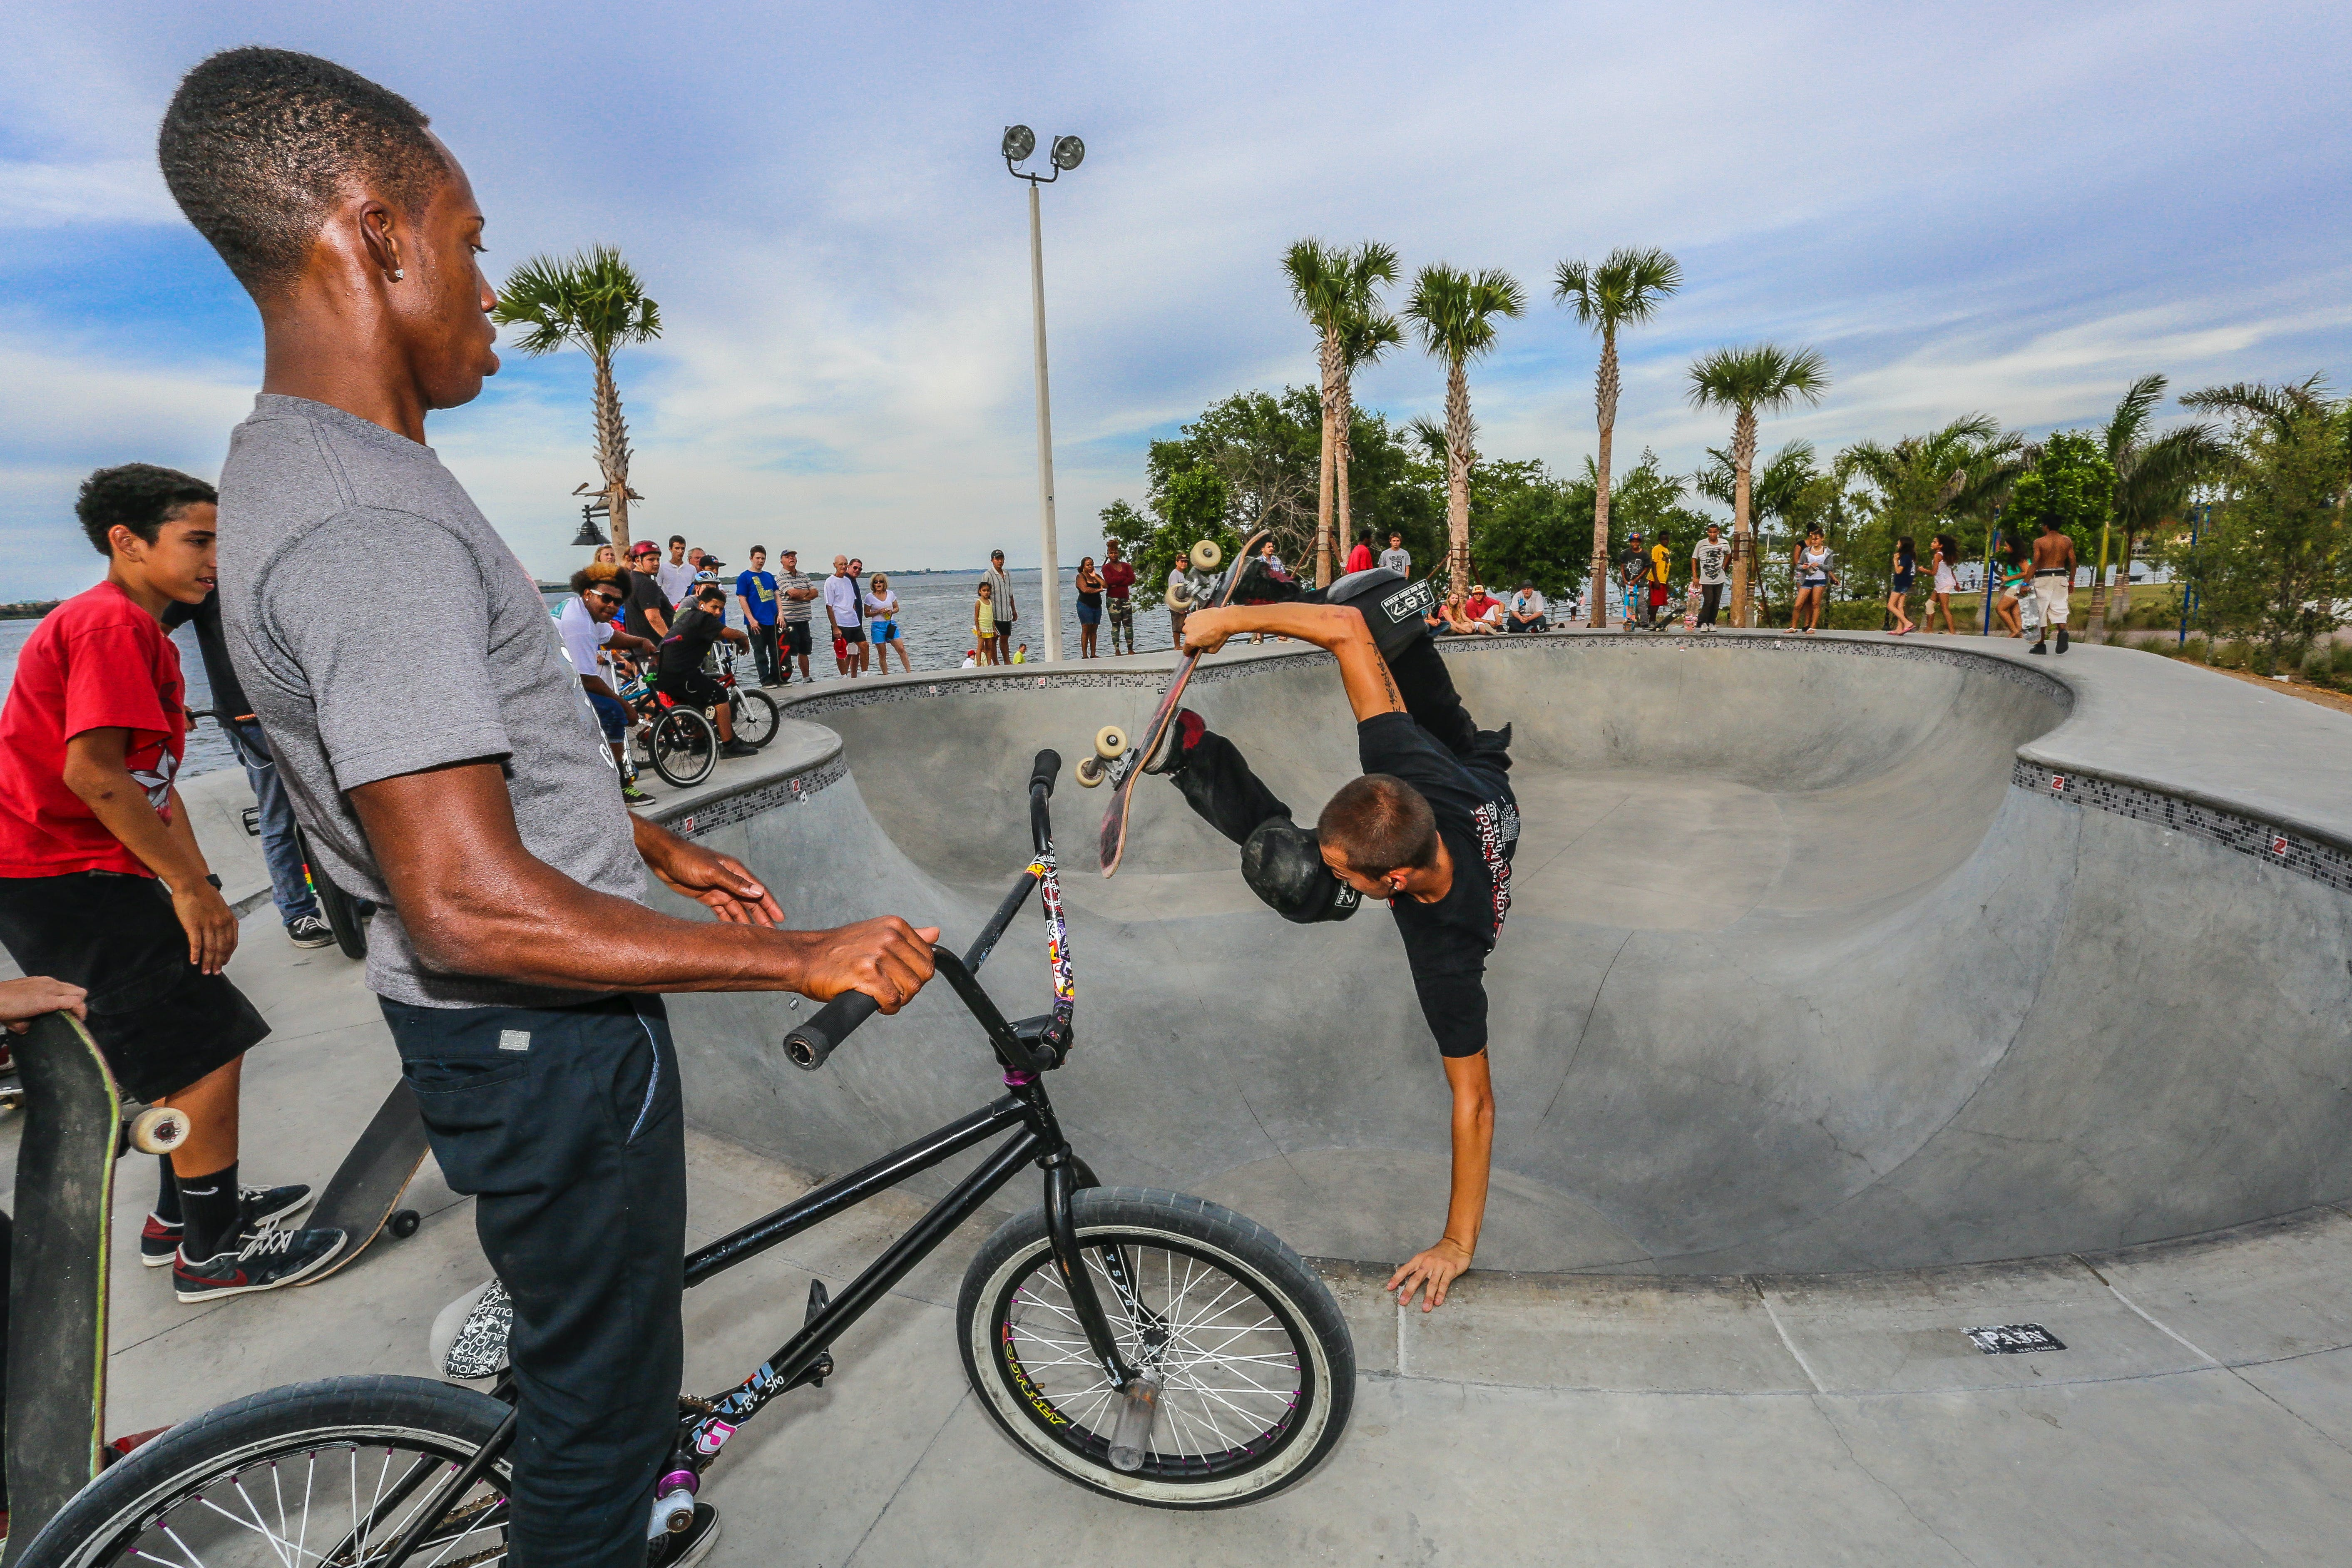 <p>People of all ages visit&nbsp;the skatepark at the&nbsp;Bradenton, Florida, Riverwalk.&nbsp;</p>